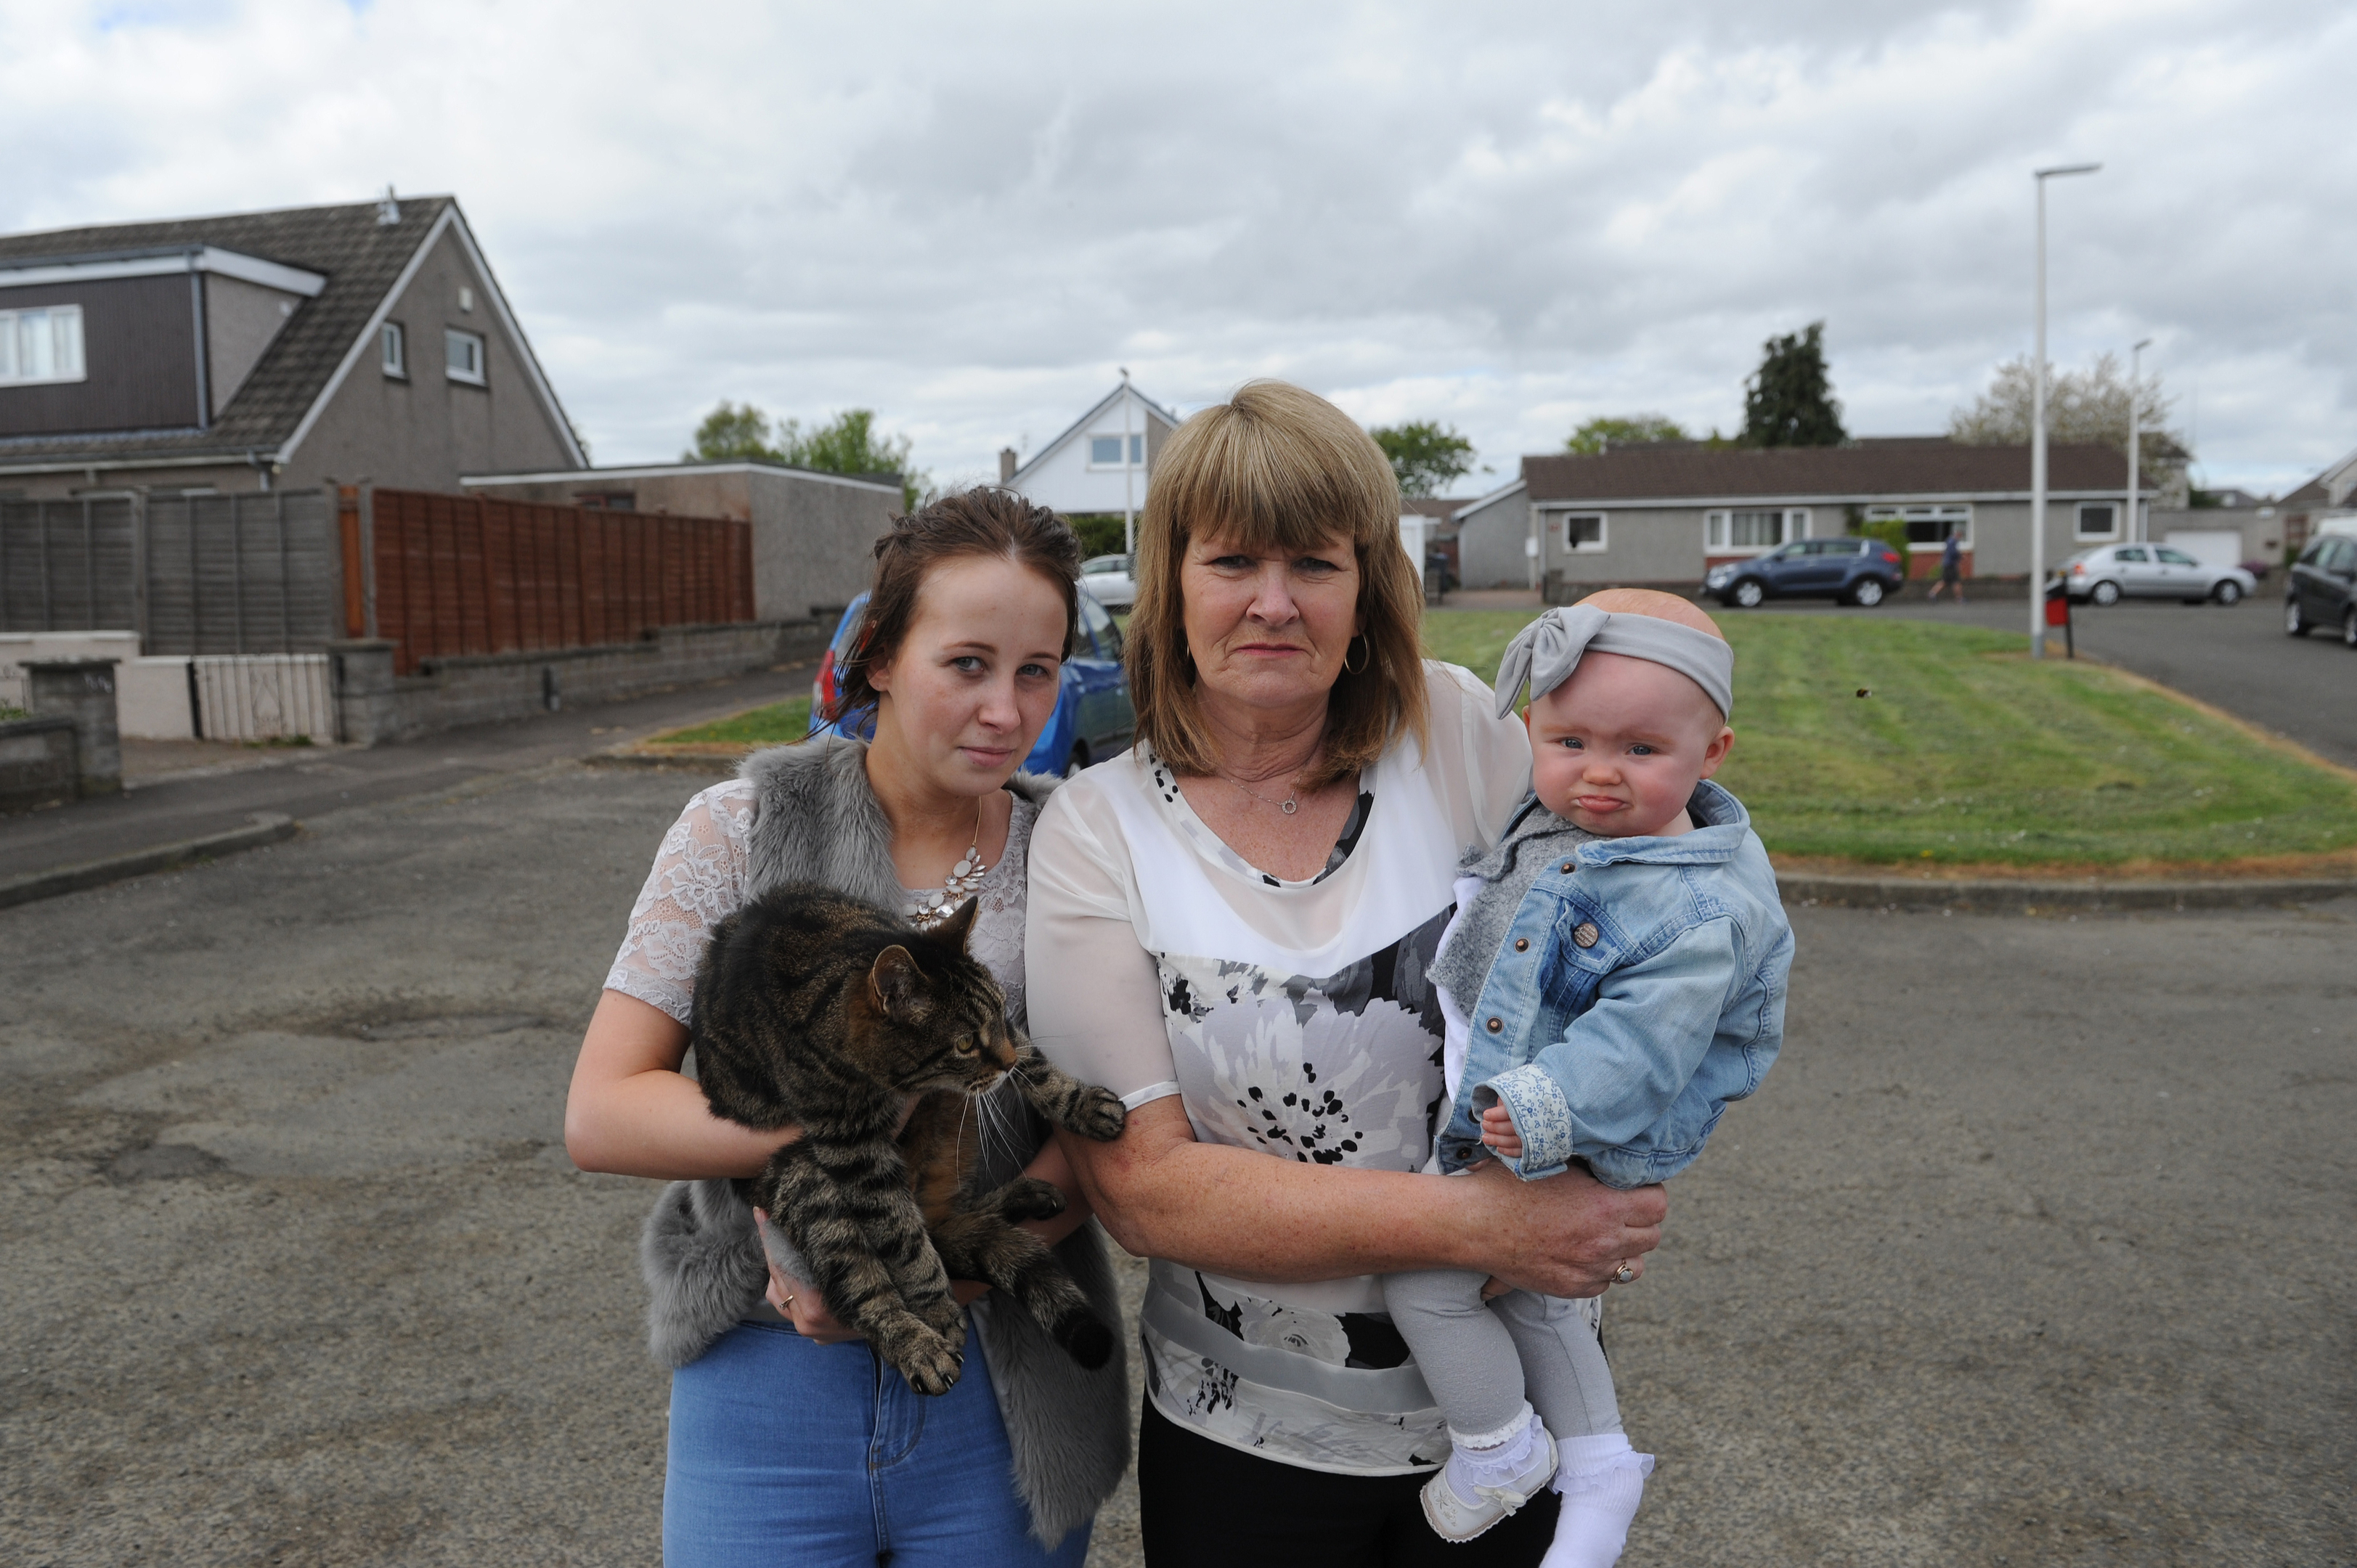 Unhappy with the prospect of a house being built on what they believe is public land are l to r - Rebecca Wood and Laura Black with her grand daughter Harper.